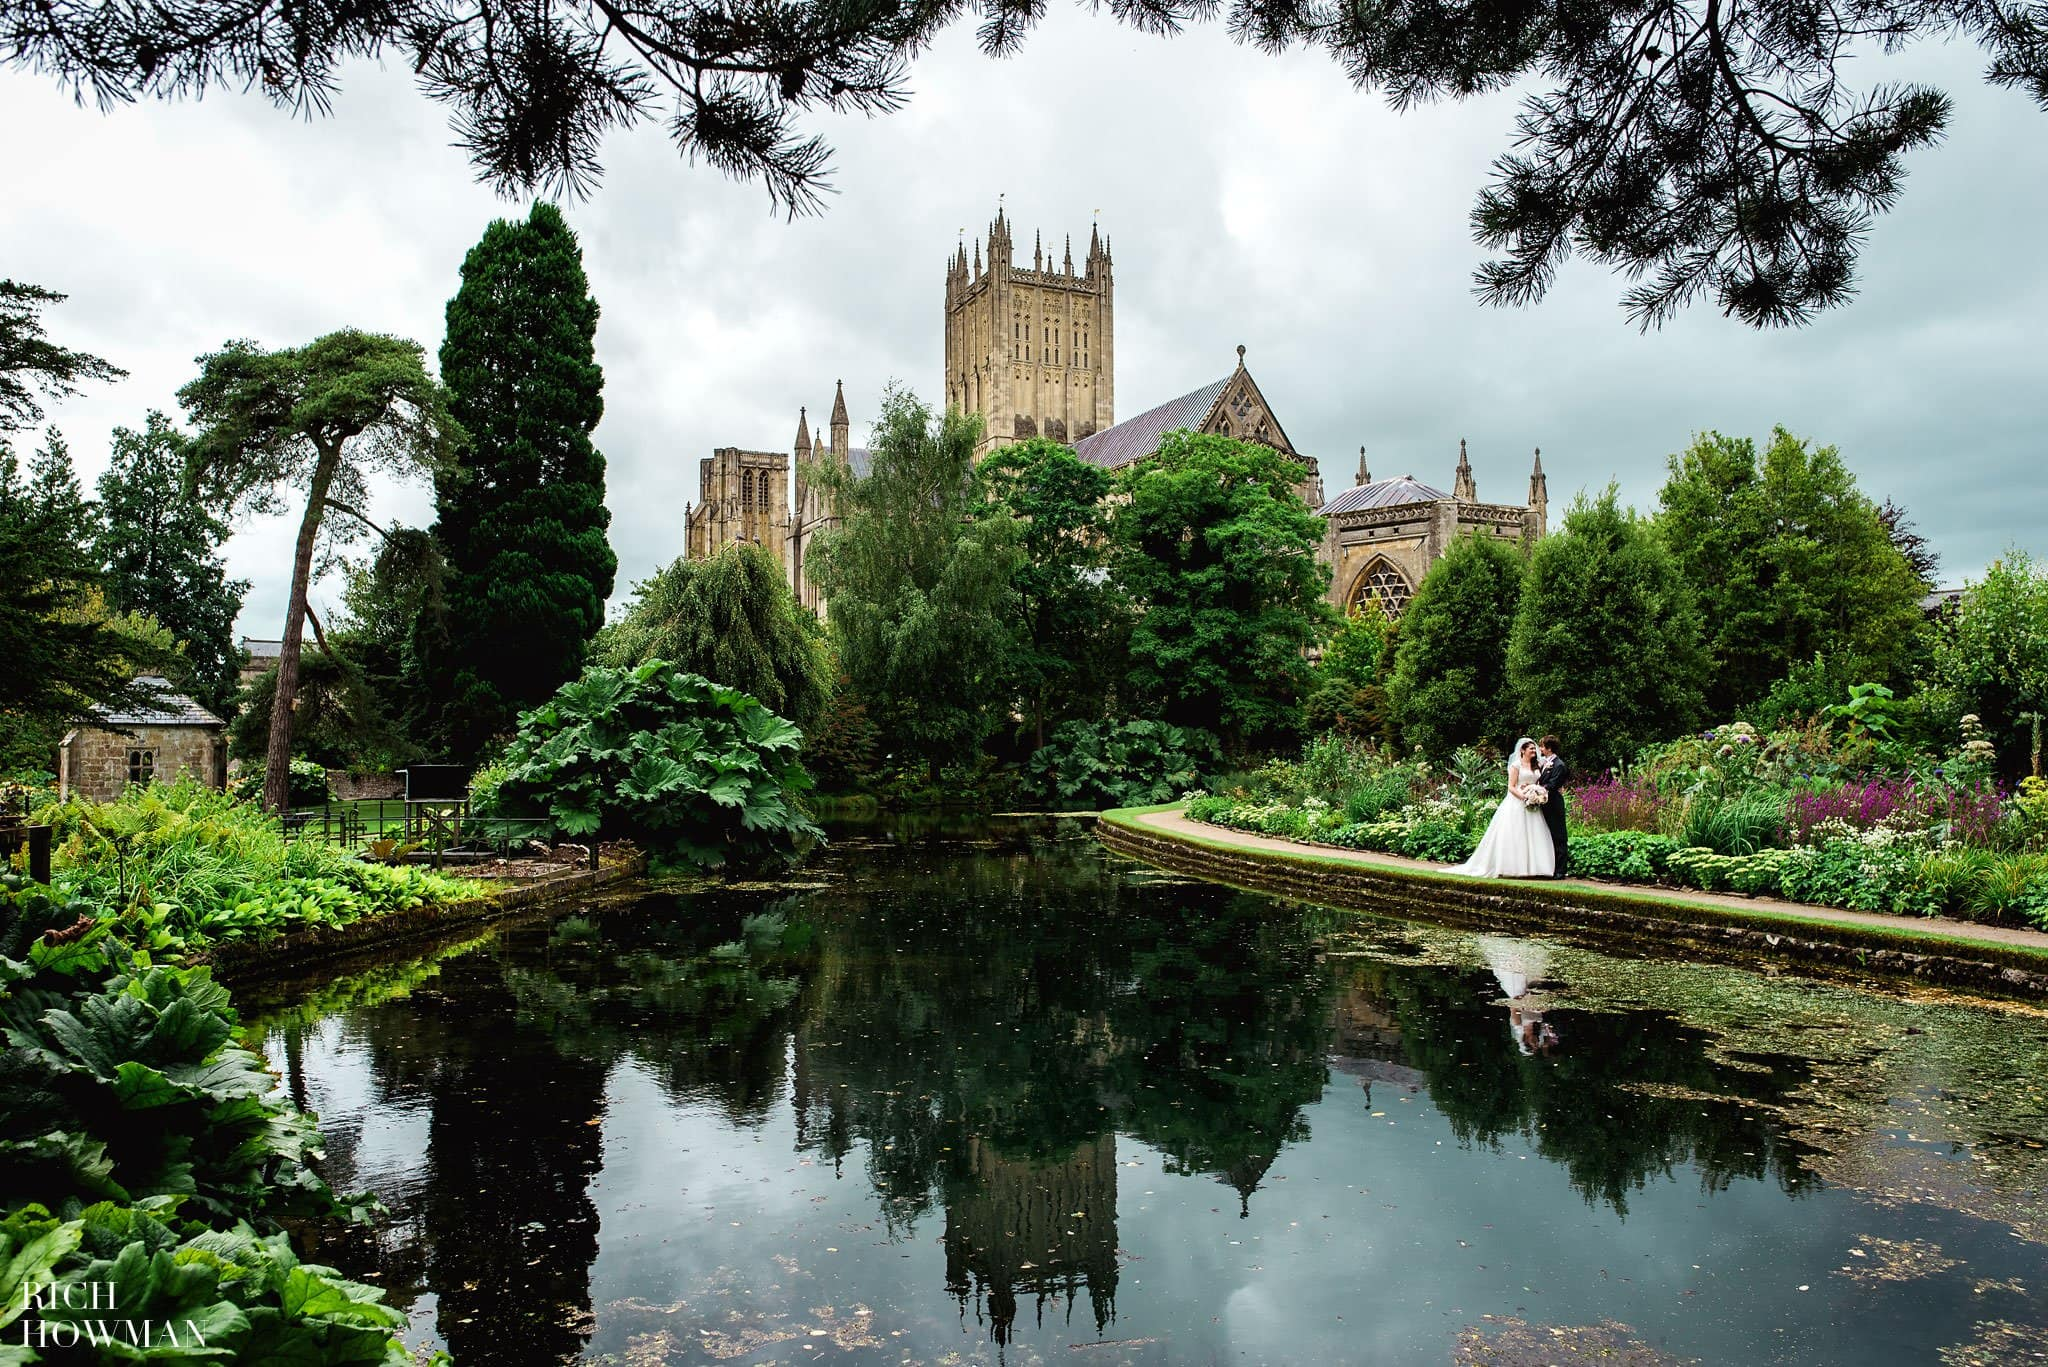 Wedding Photographer at the Bishops Palace photographing the bride and groom with Wells cathedral in the background